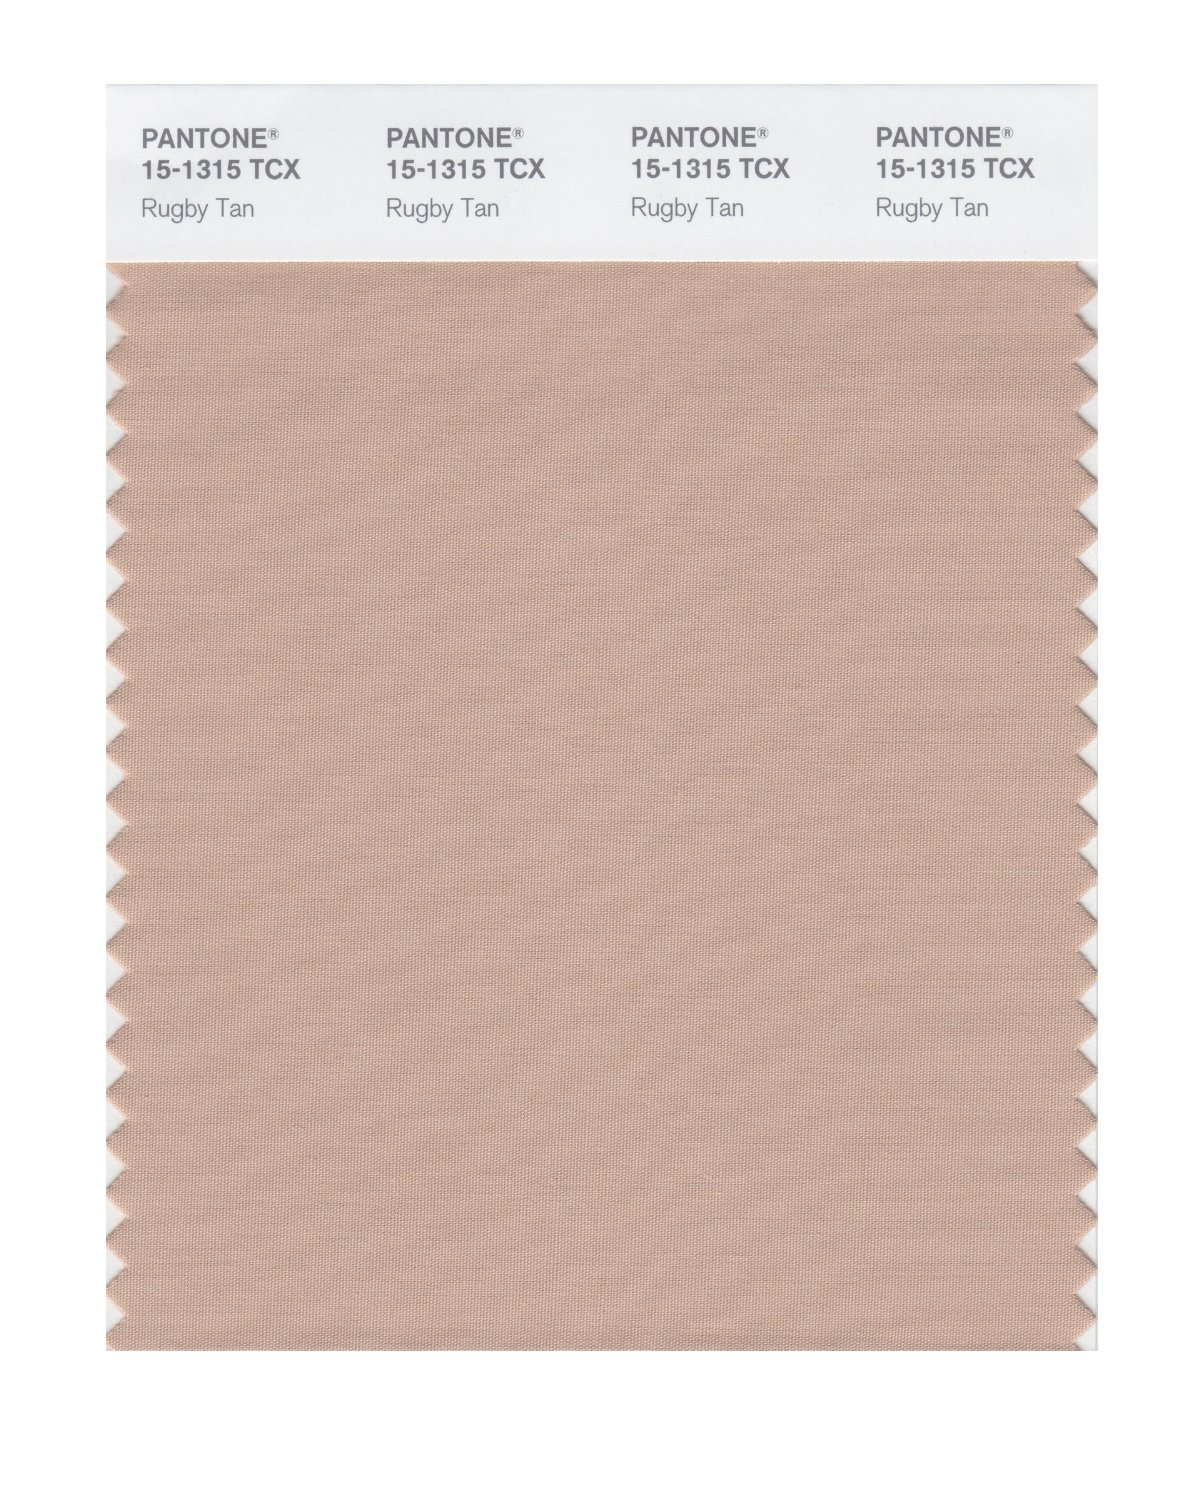 Pantone Smart Swatch 15-1315 Rugby Tan